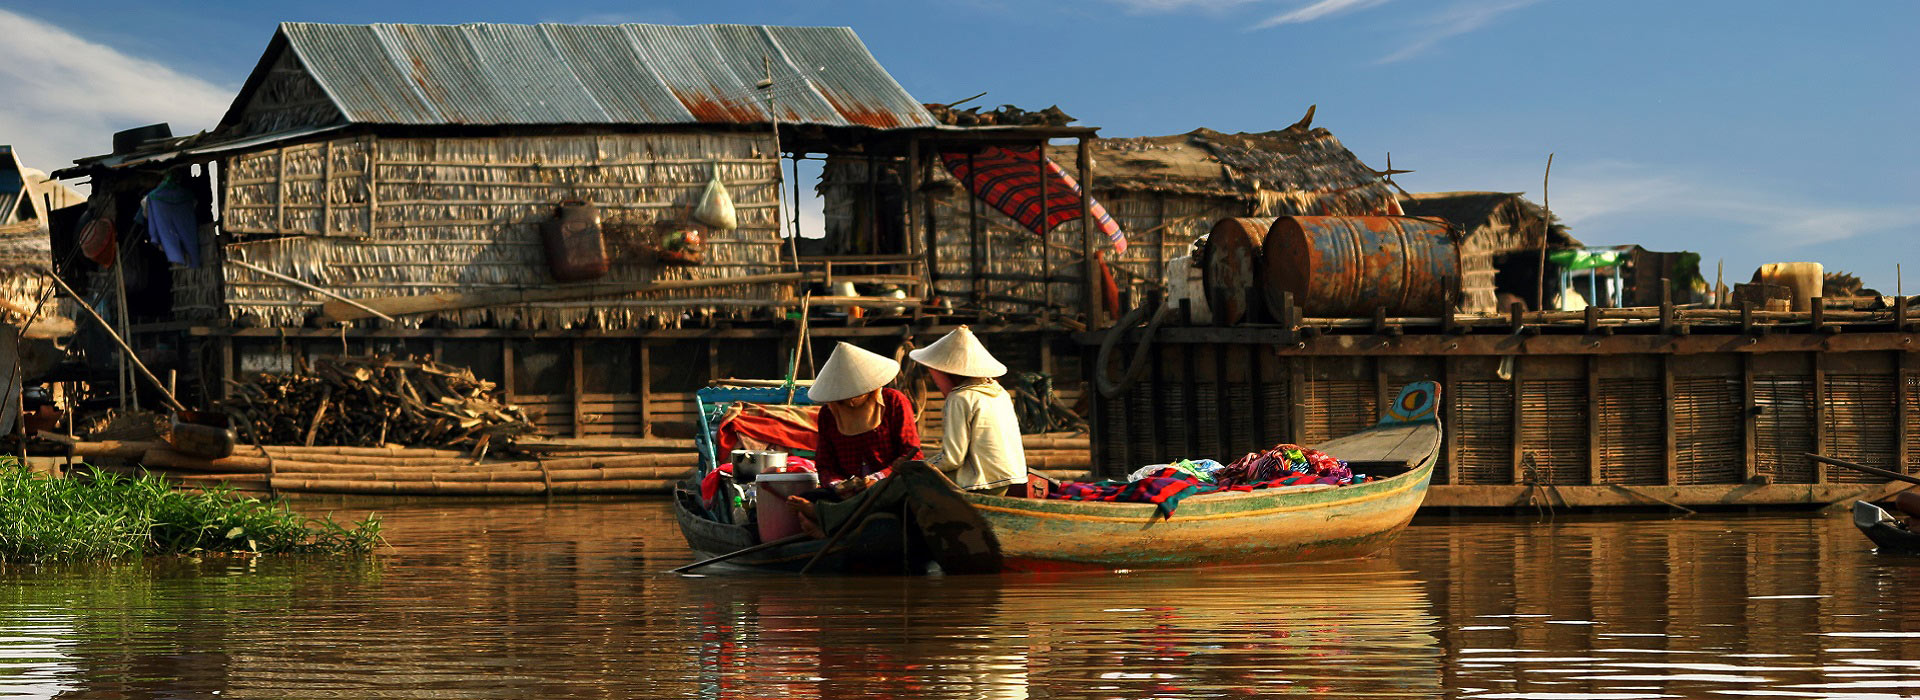 cambodian_women_sail_on_a_boat_tonle_sap_lake